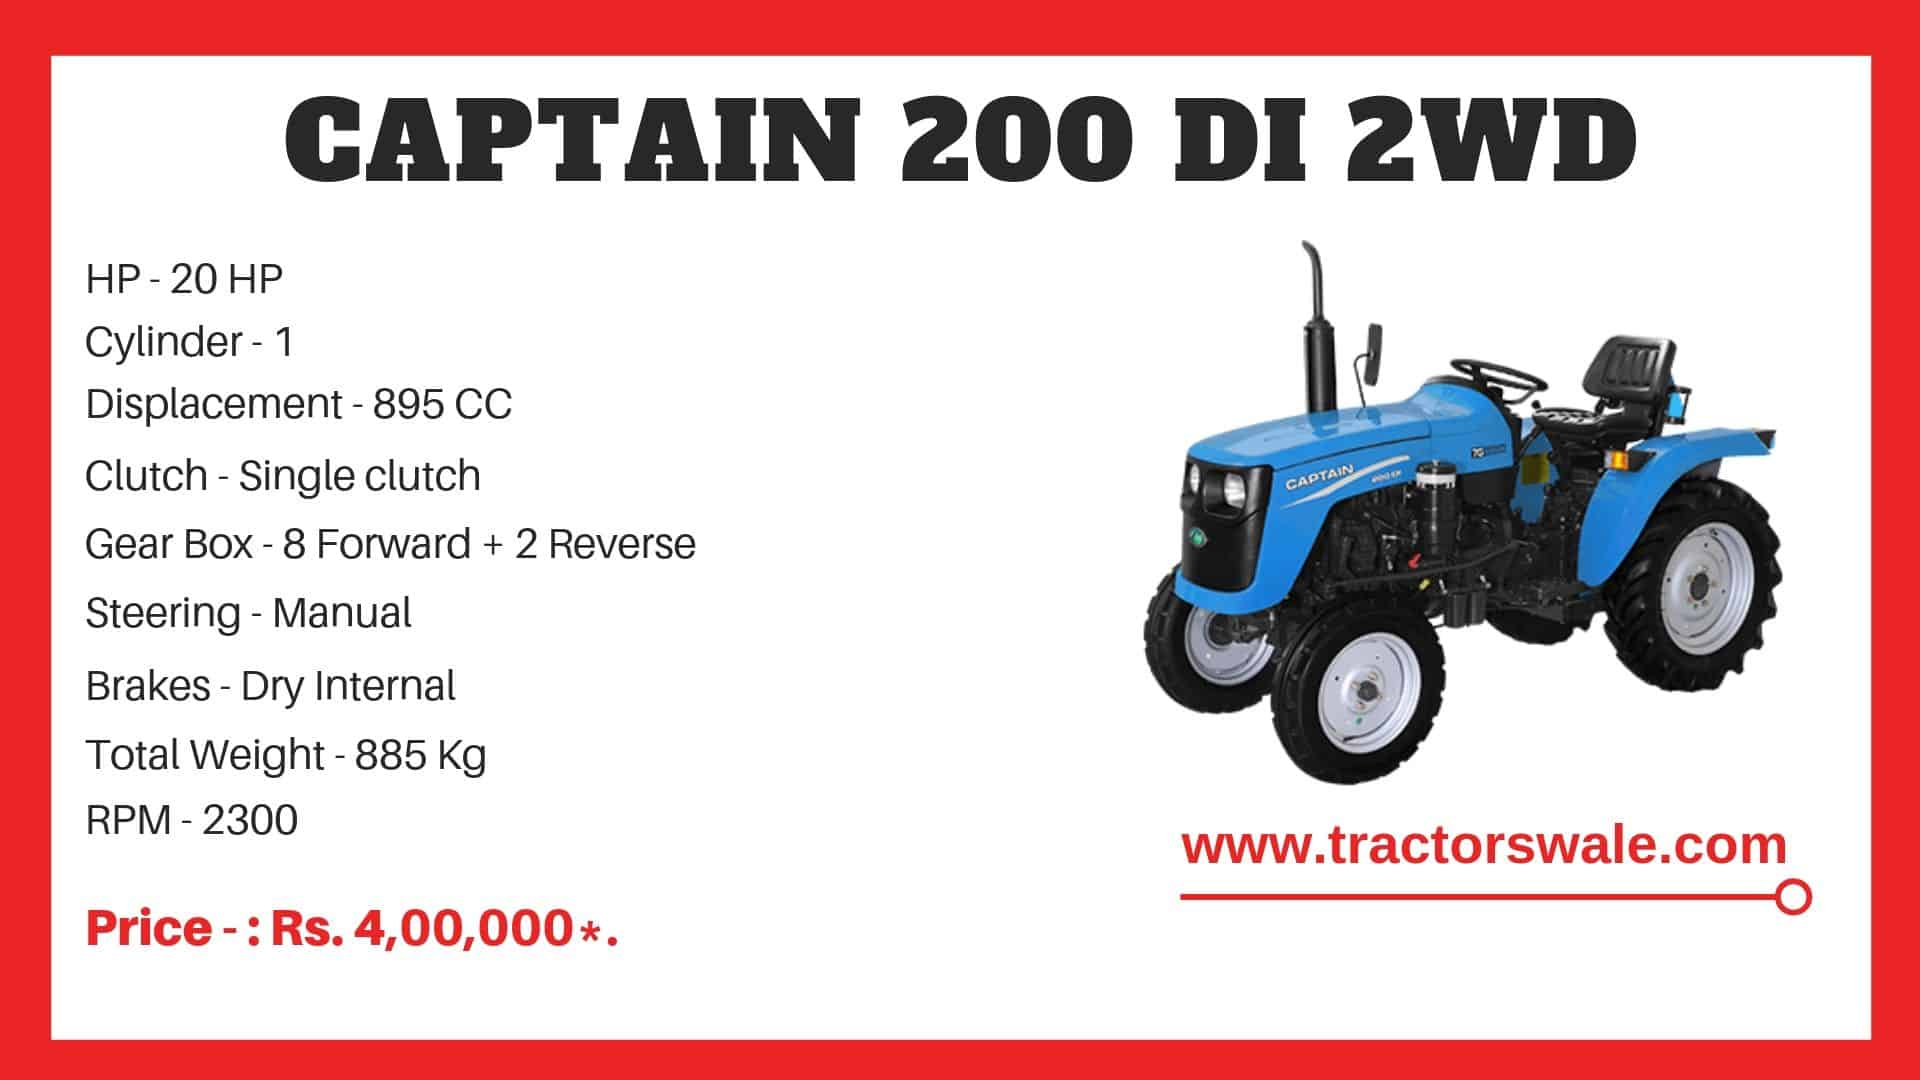 Specification of Captain 200 DI